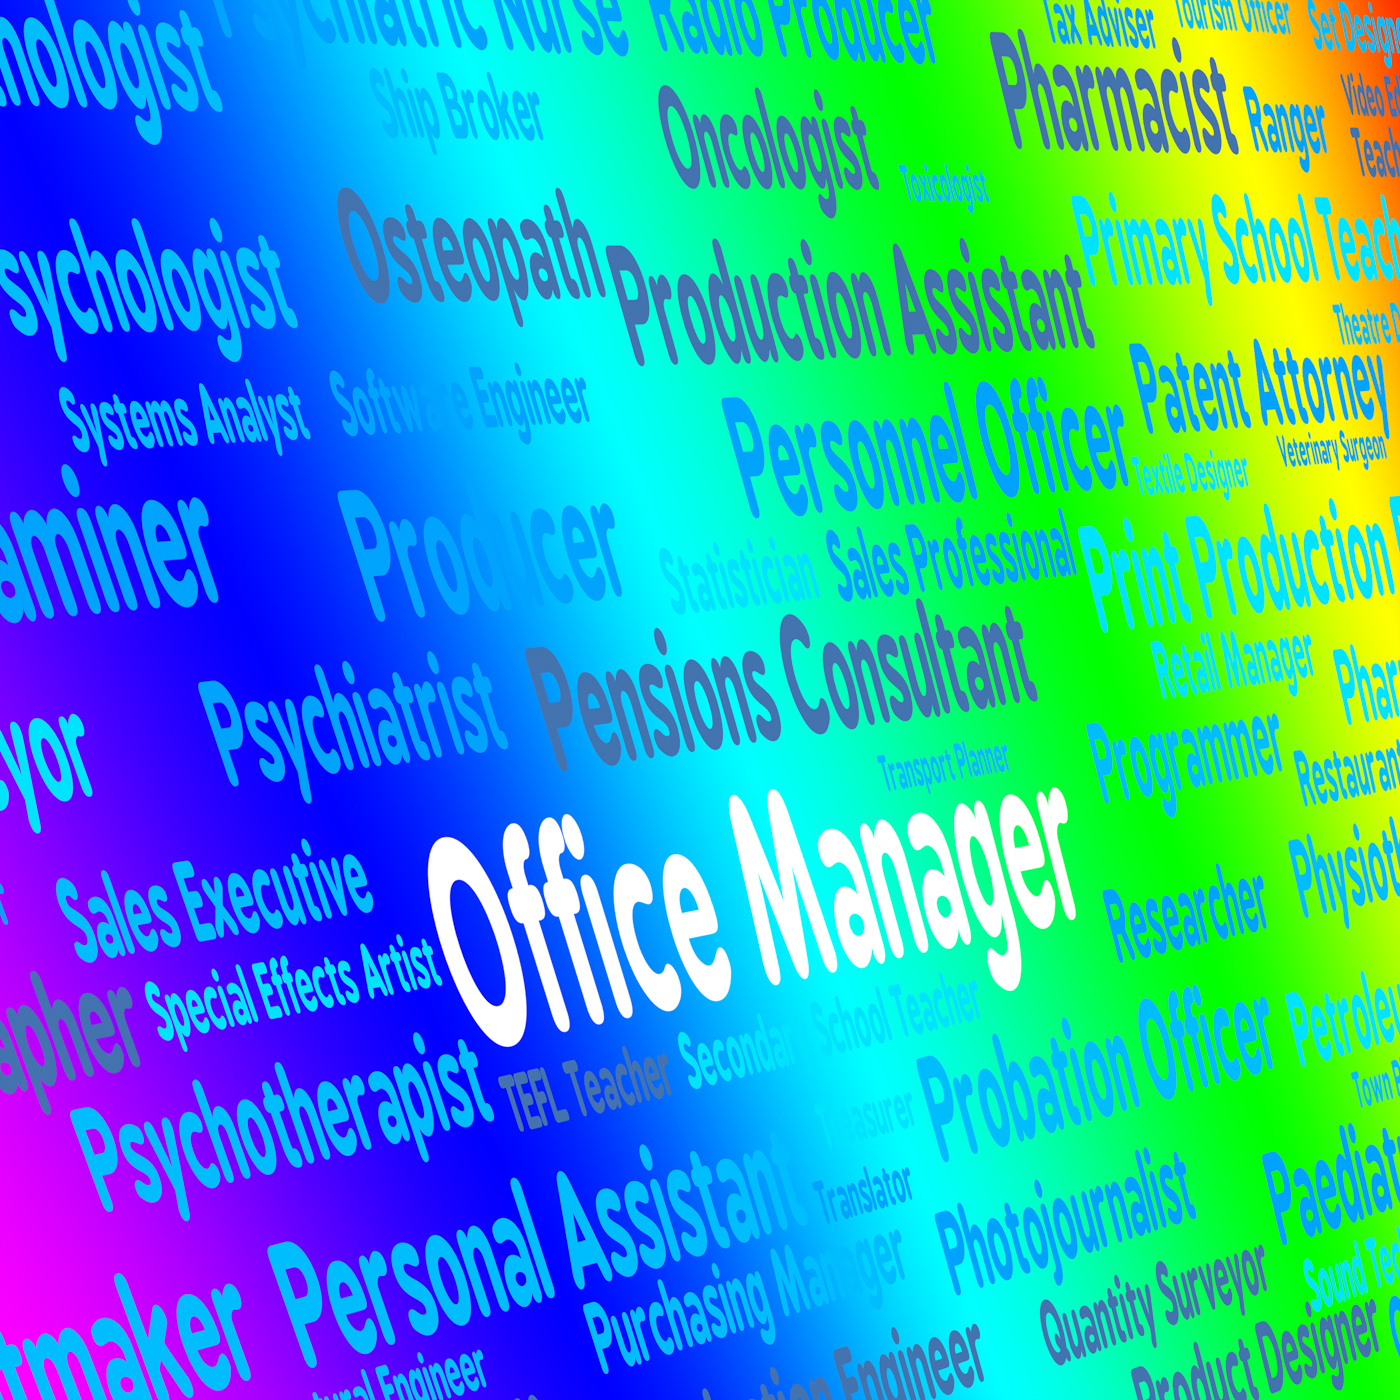 Office manager shows position proprietor and overseer photo